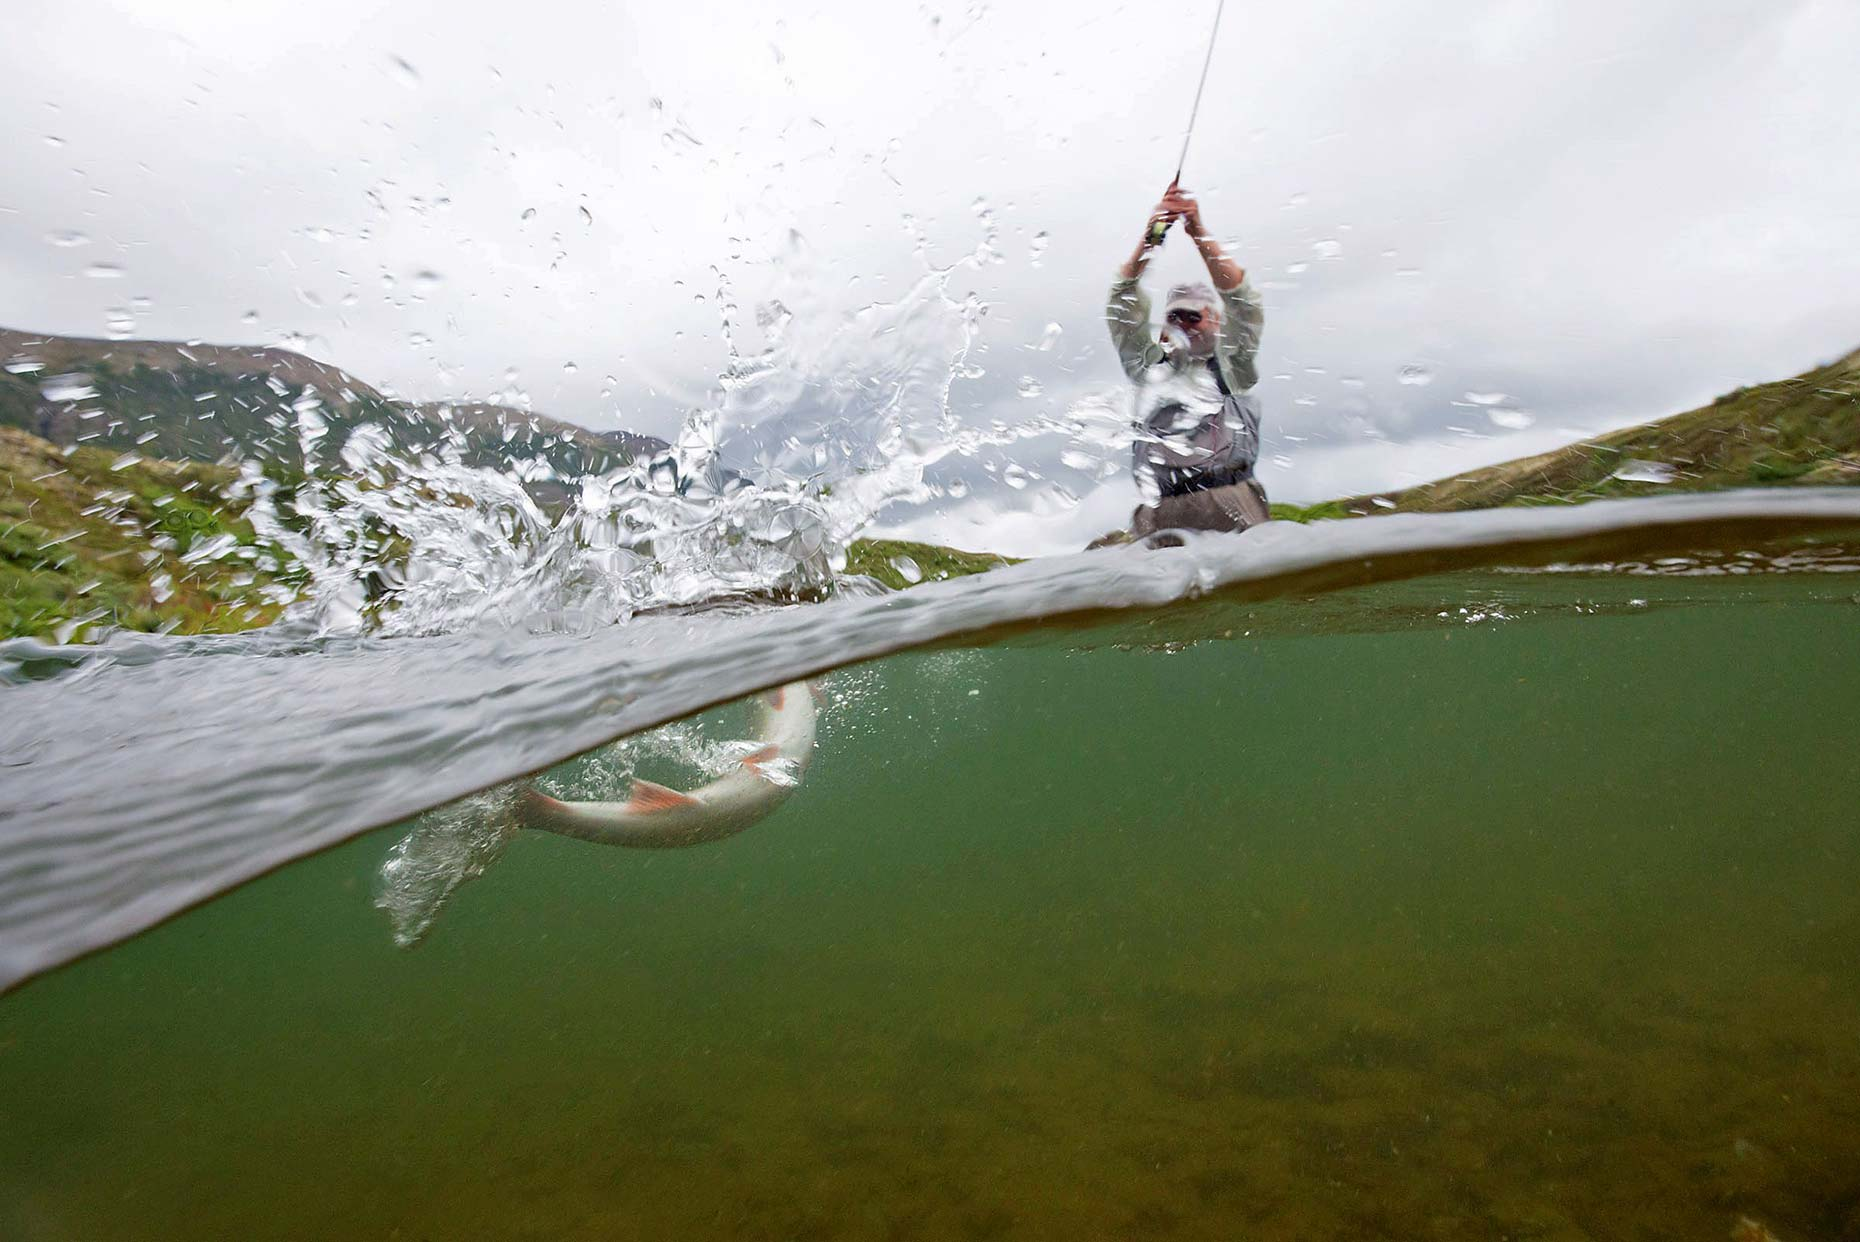 Ian-Coble-Fly-Fishing-River-Alaska-Underwater-Over-Under